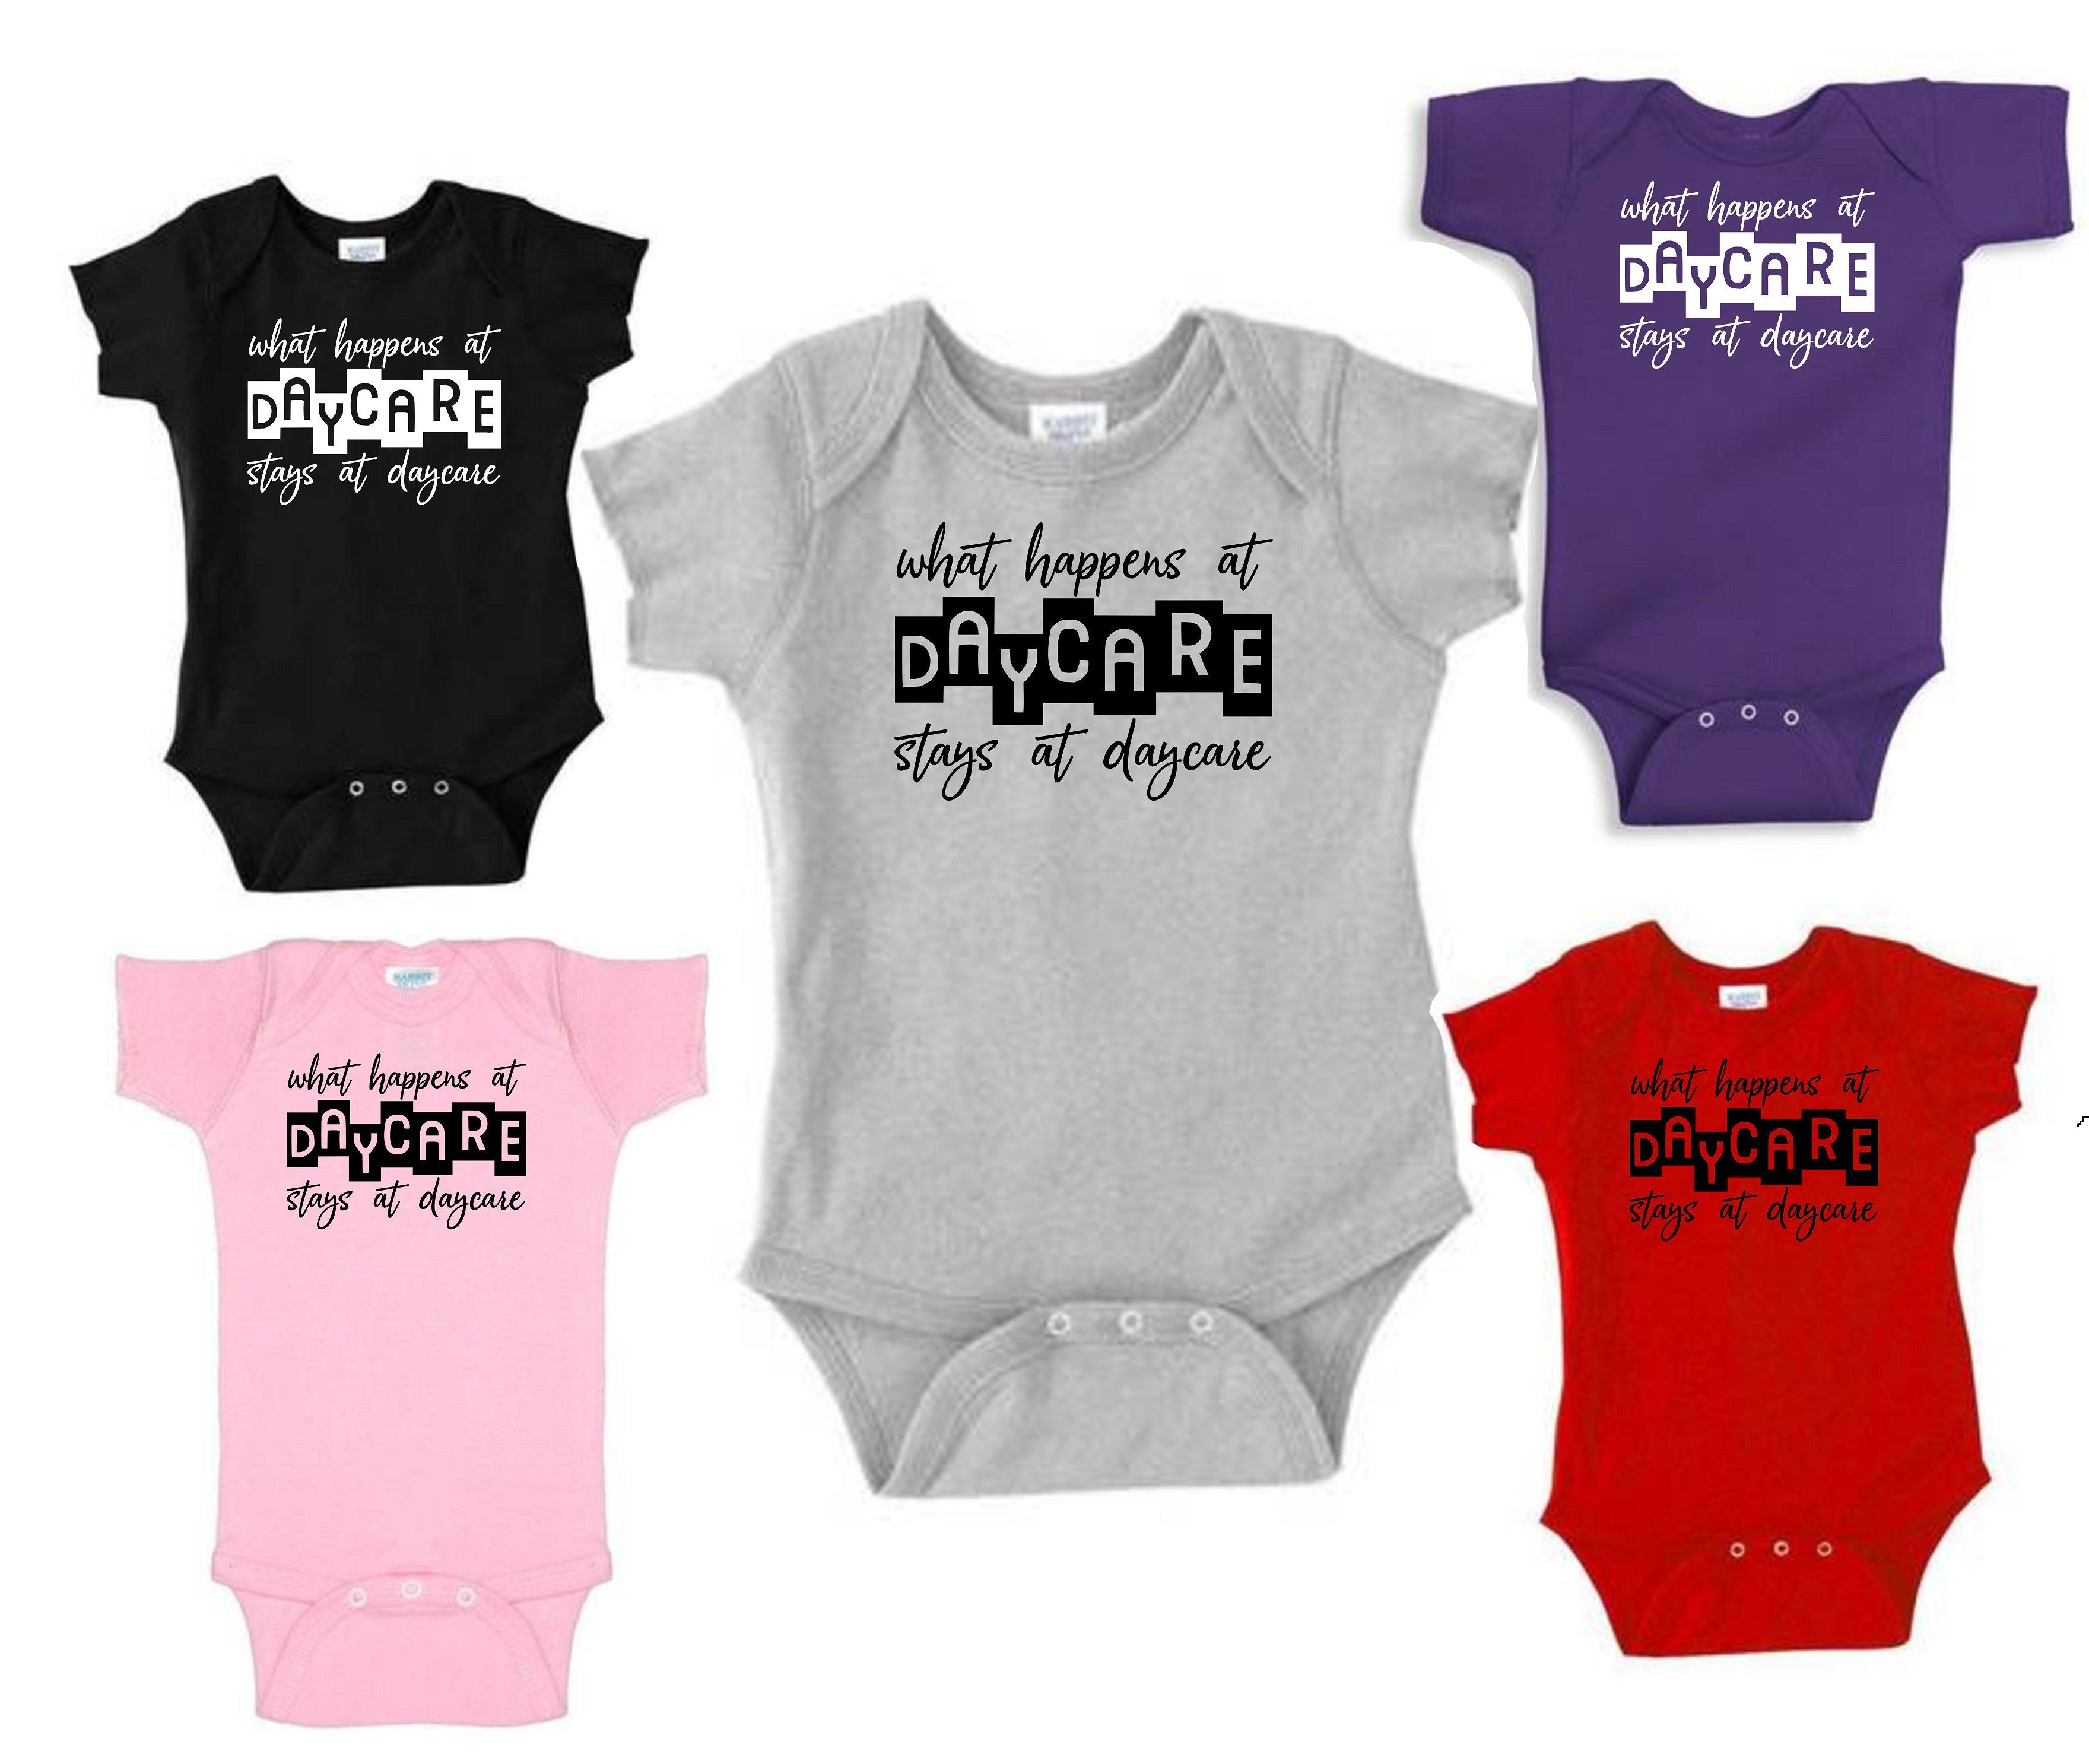 c567f7734 Funny Kids shirt or Baby Onesie -